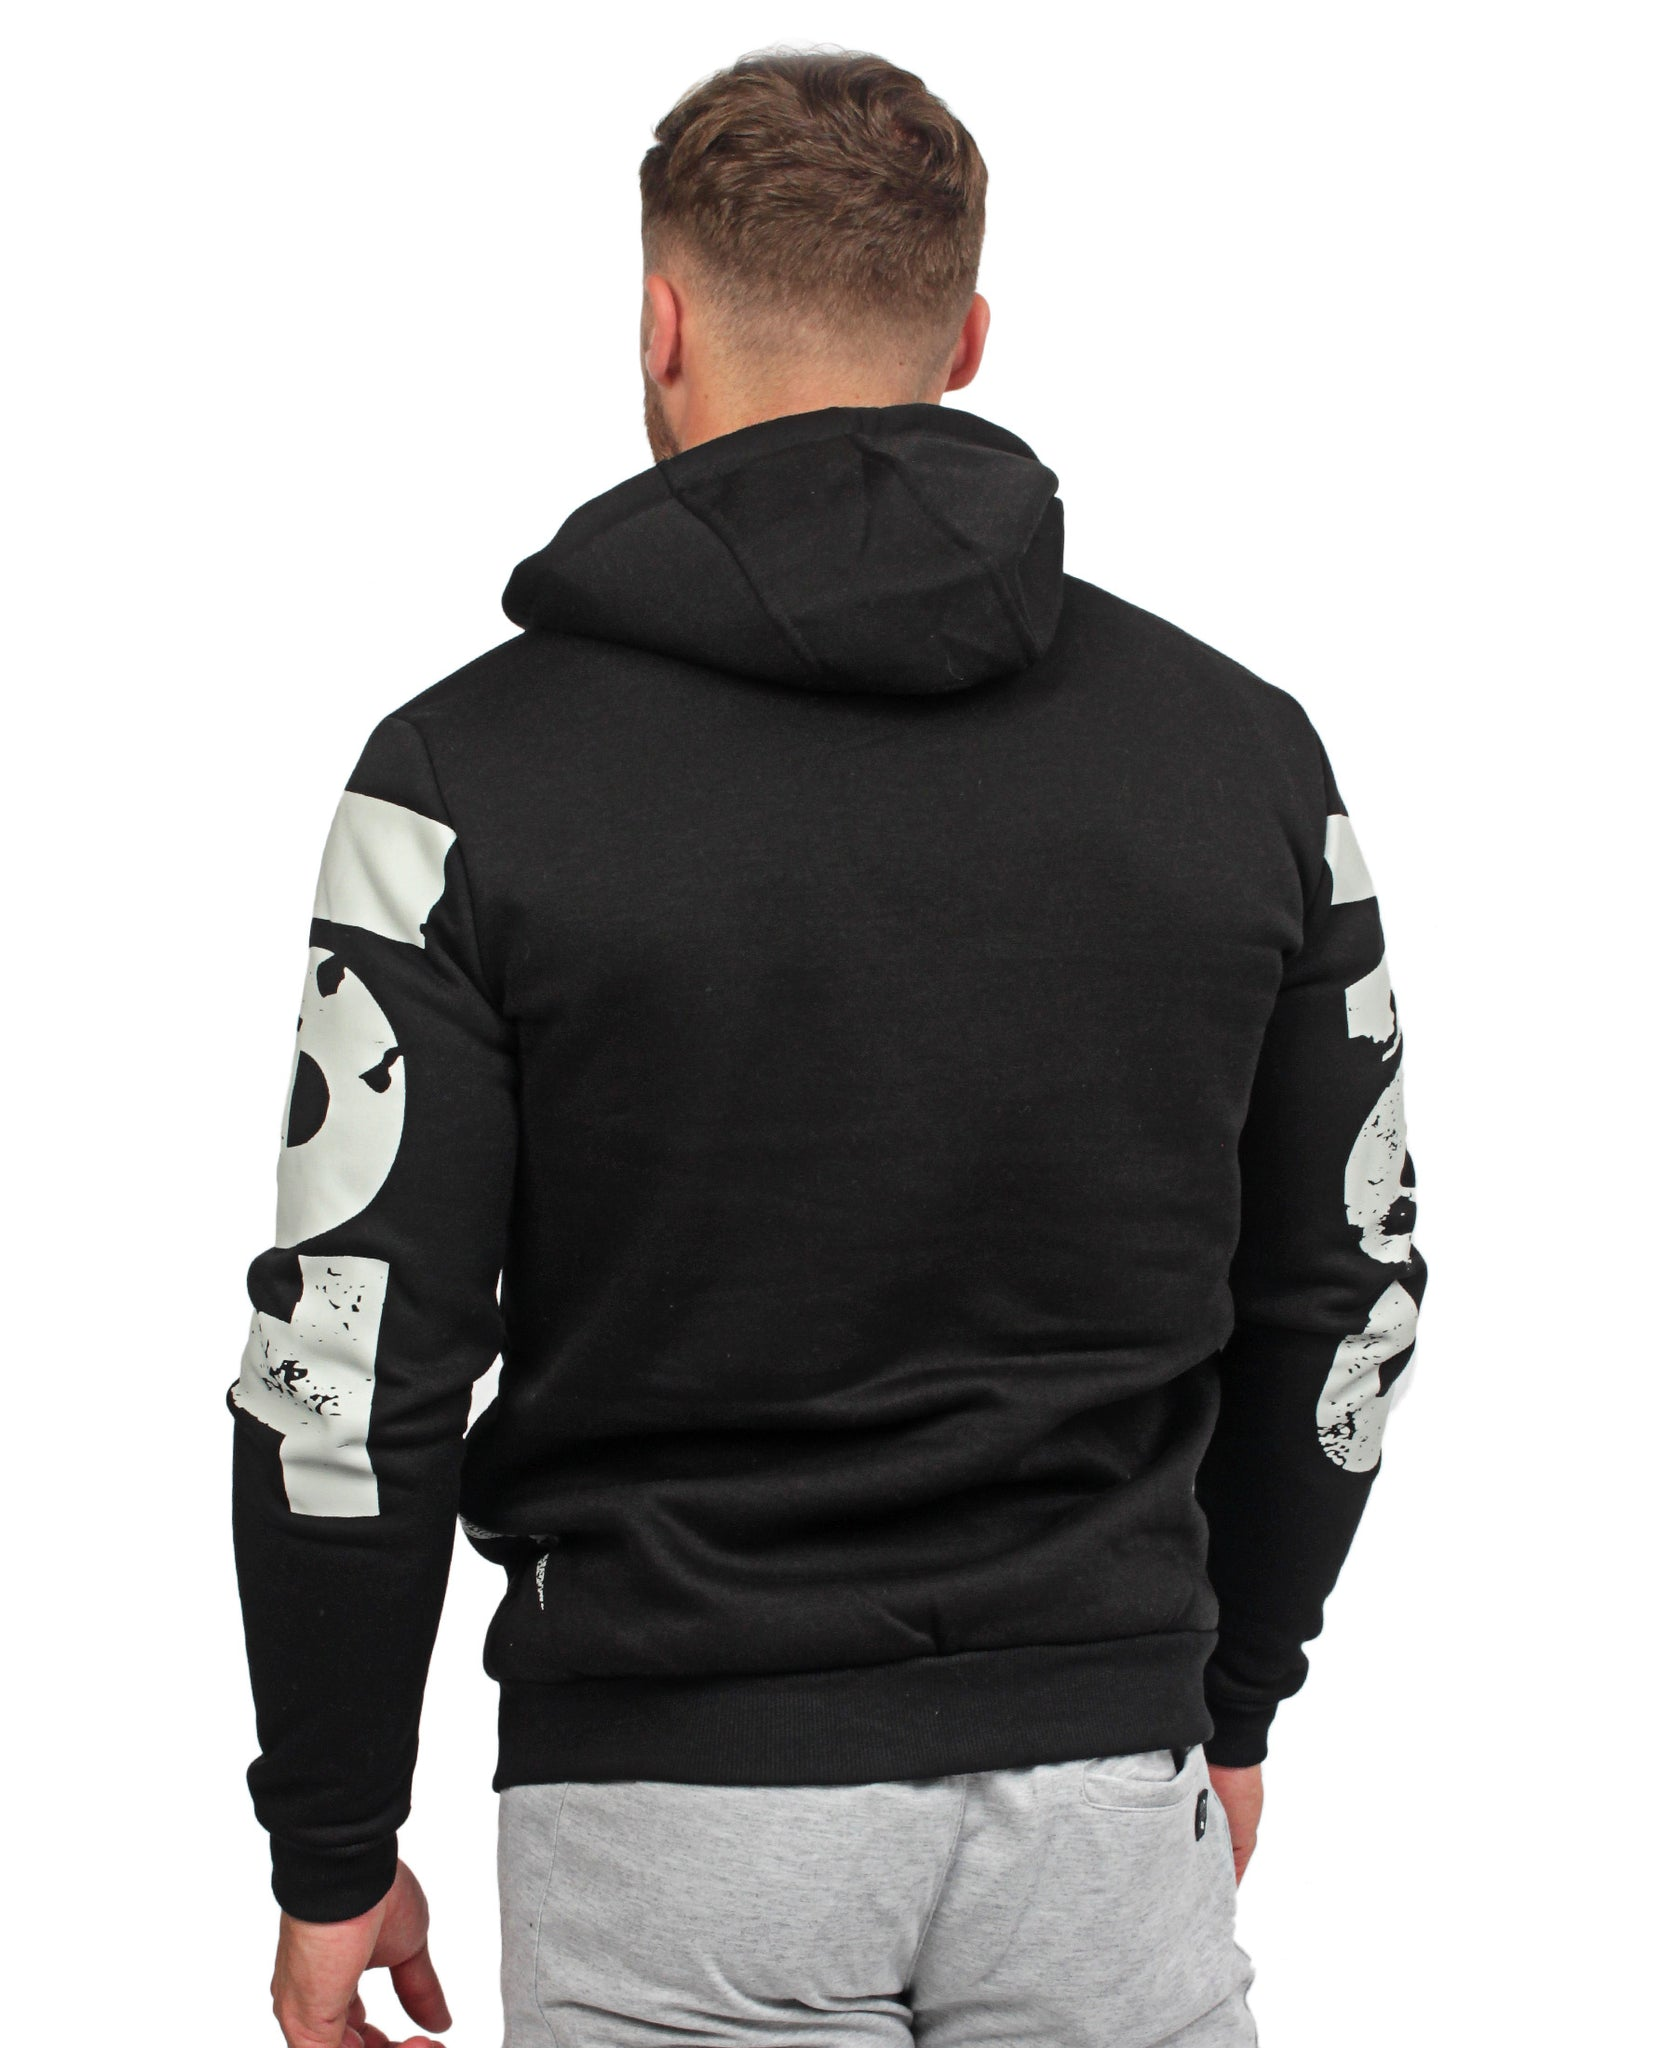 Bartlett Hooded Jacket - Black